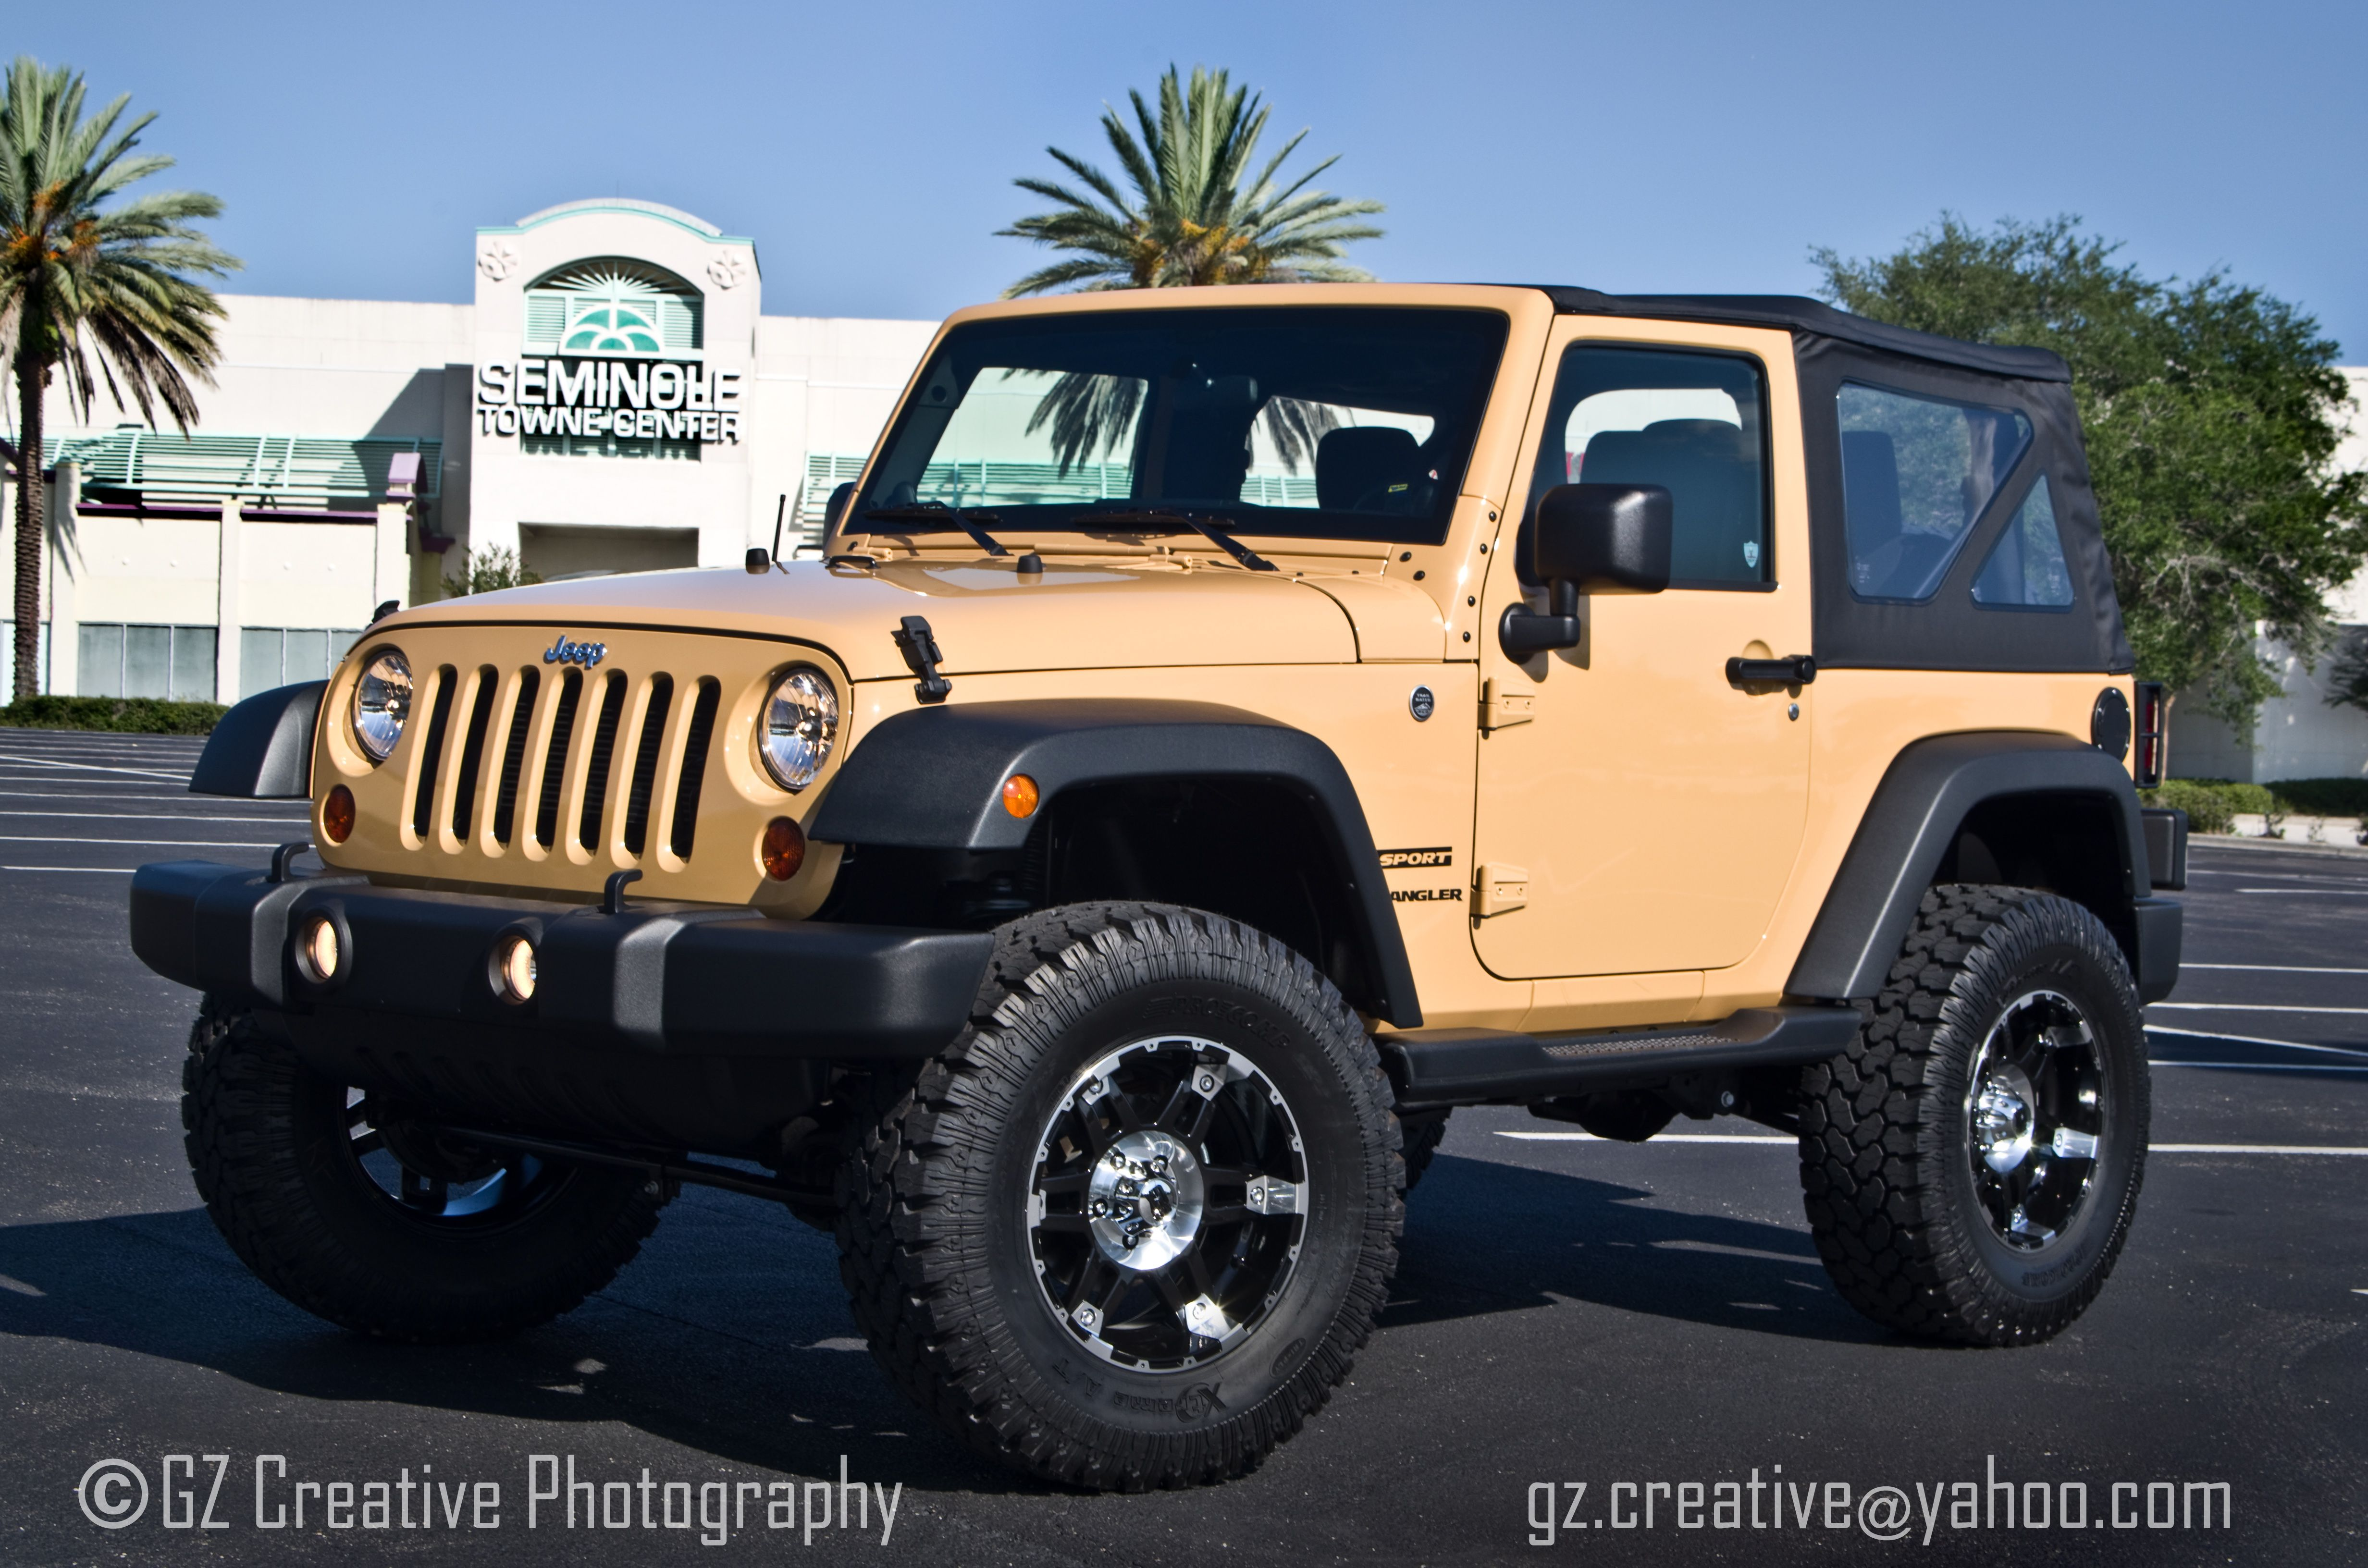 Pin By Ktly98 On Jeep Wrangler Sport Mods Yellow Jeep Wrangler 2 Door Jeep Yellow Jeep